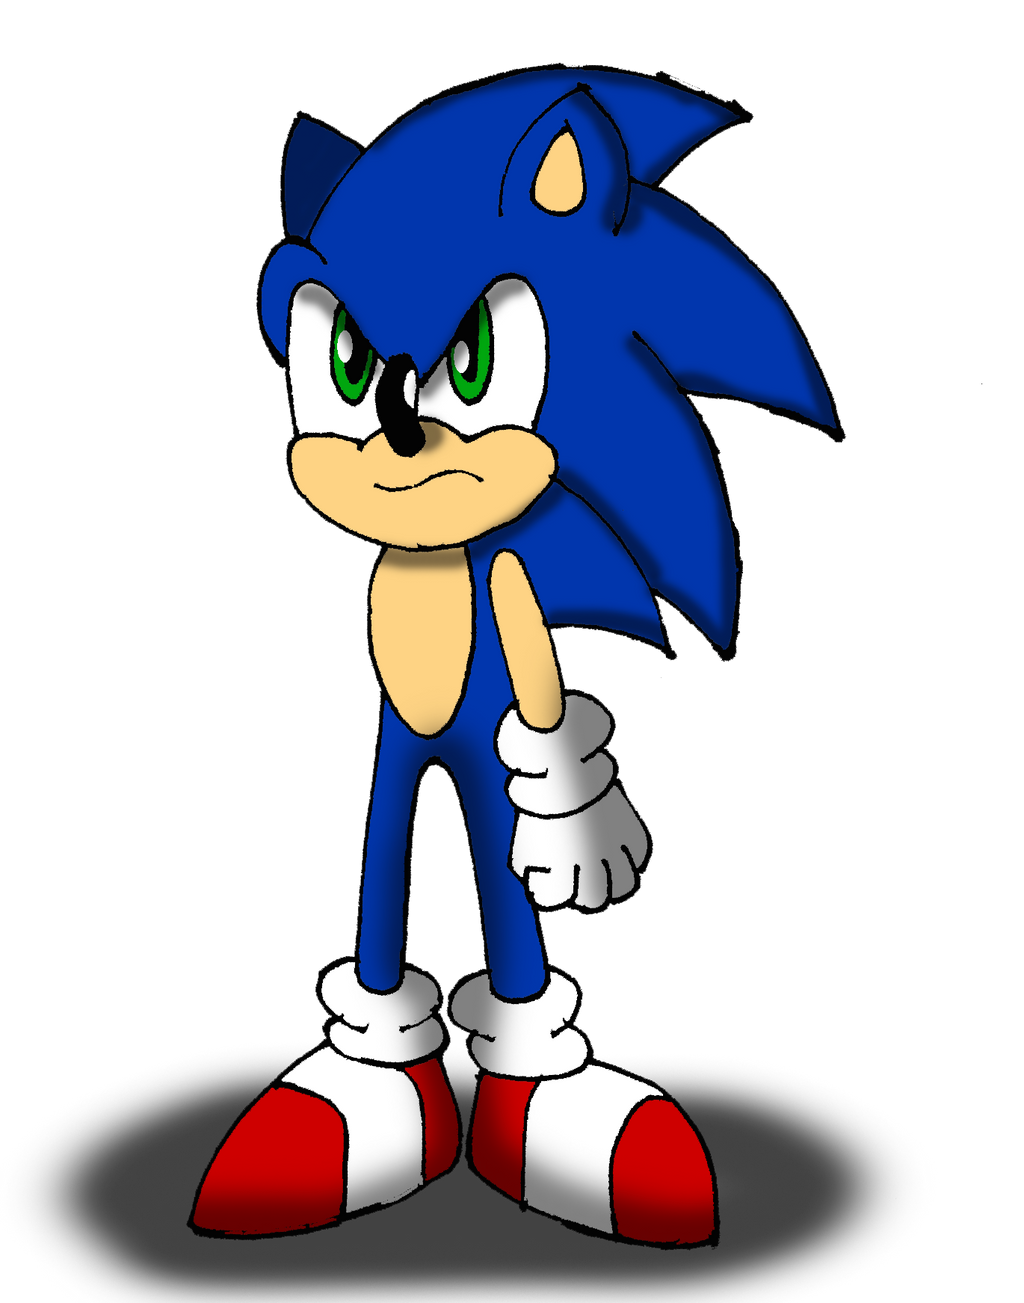 Sonic The Hedgehog Is Upset By Sonicdude645 On Deviantart